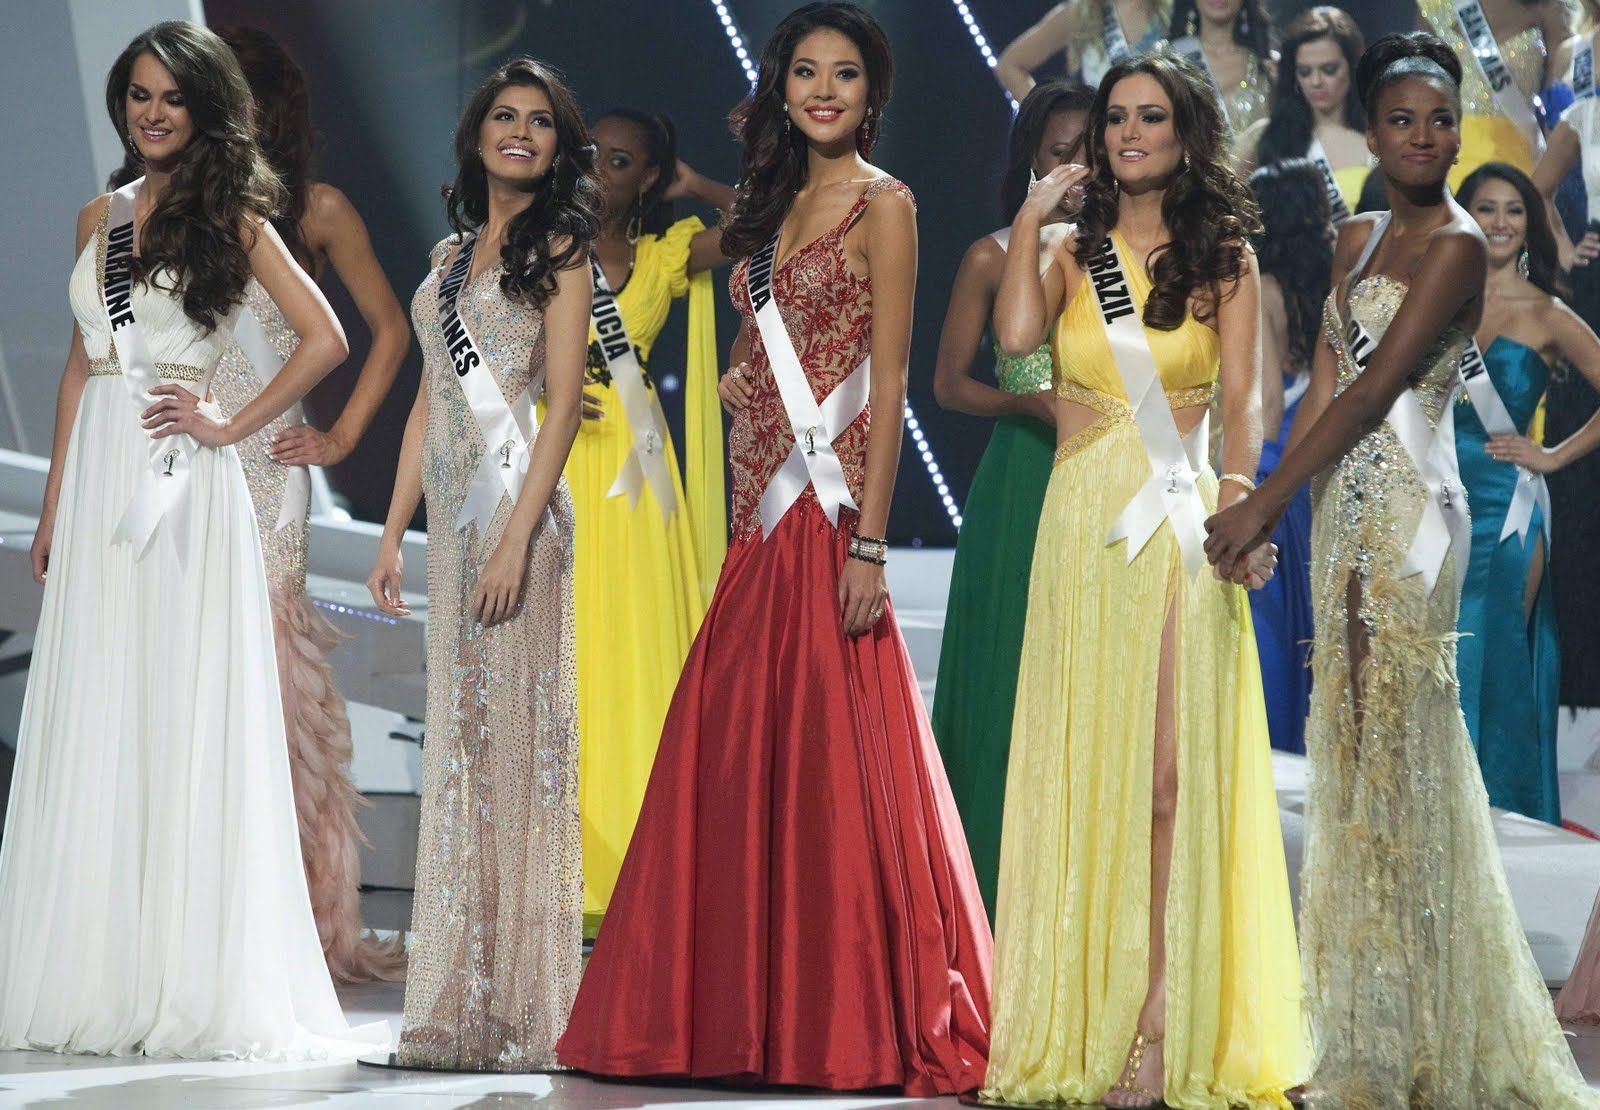 miss miss world miss universe miss asia pacific winner miss universe 2011 leila lopes piture